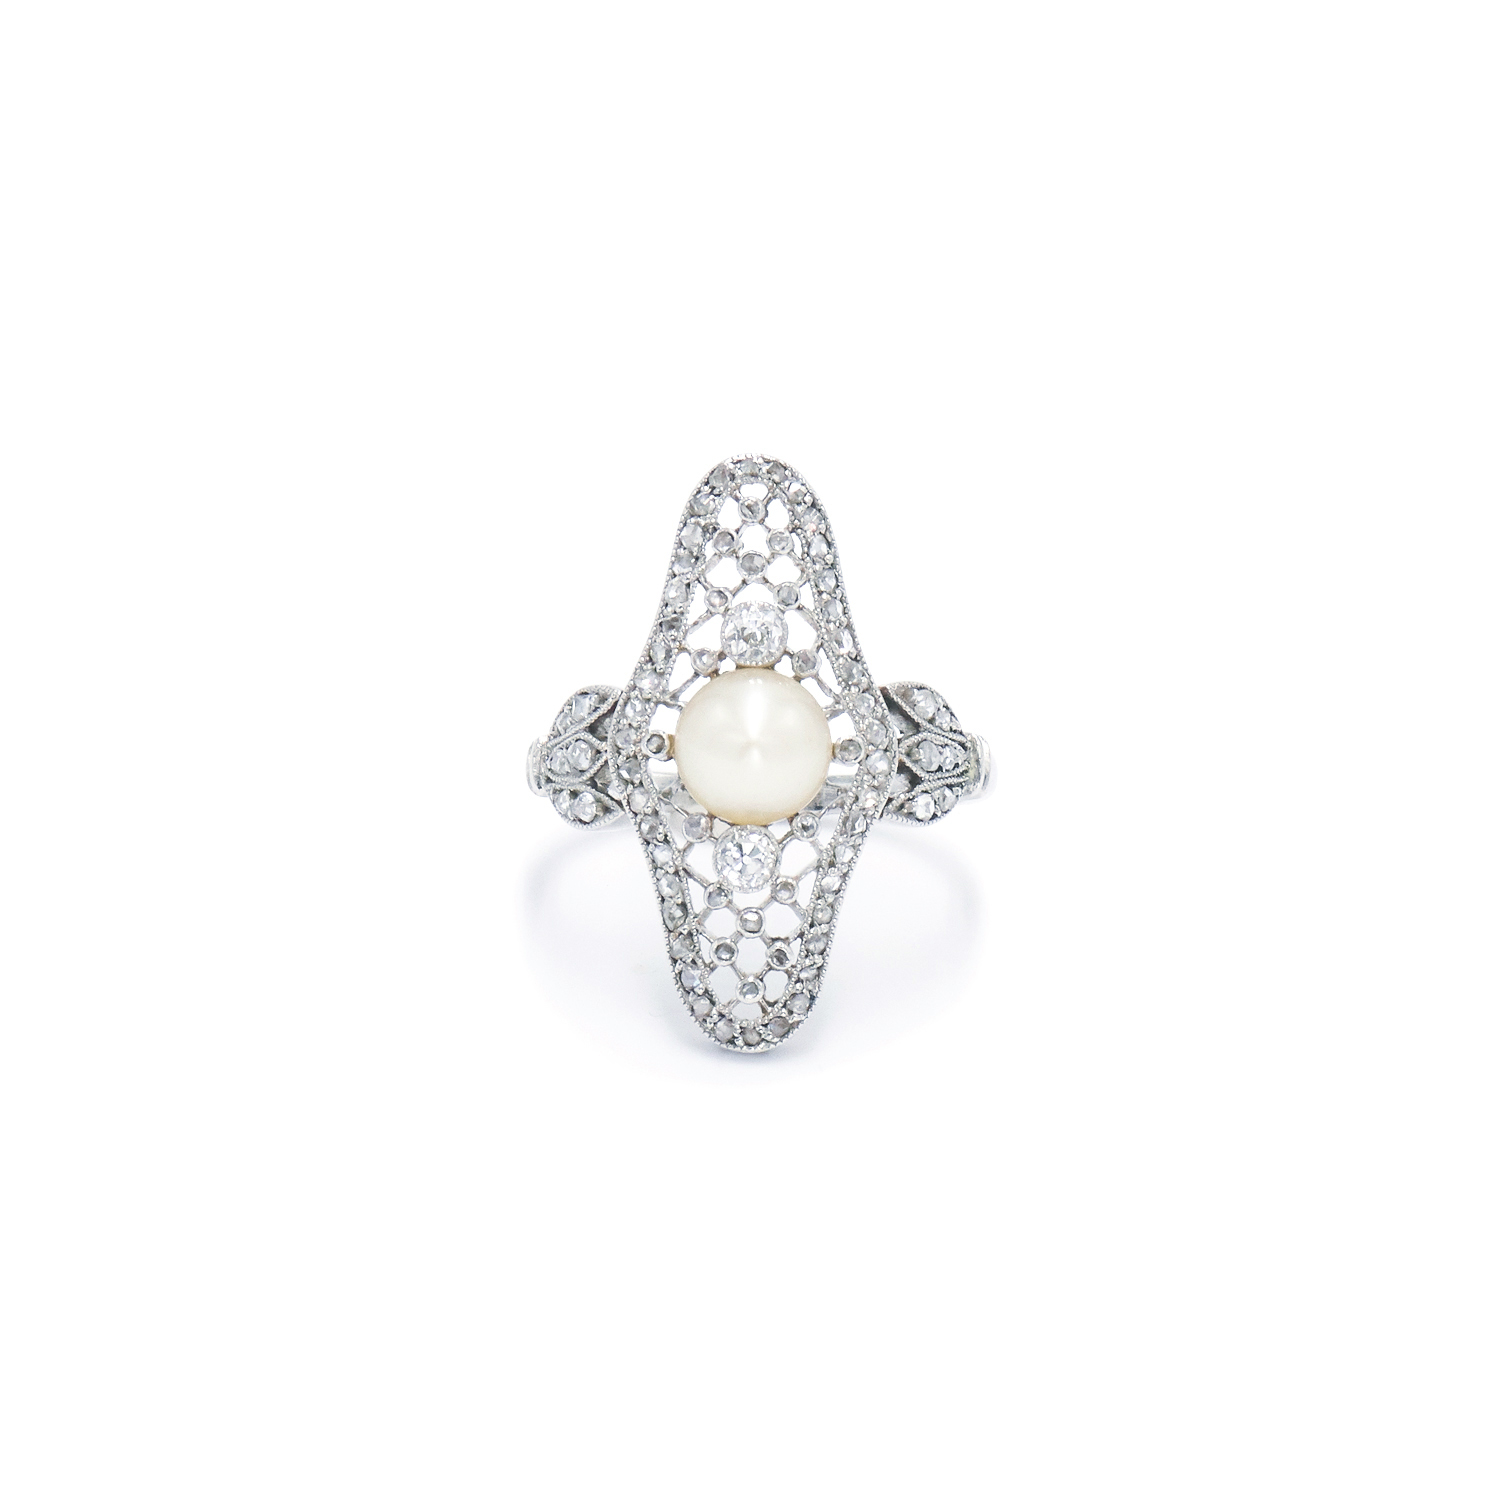 Edwardian Pearl and Diamond Ring Style F-33527-FL-0-0